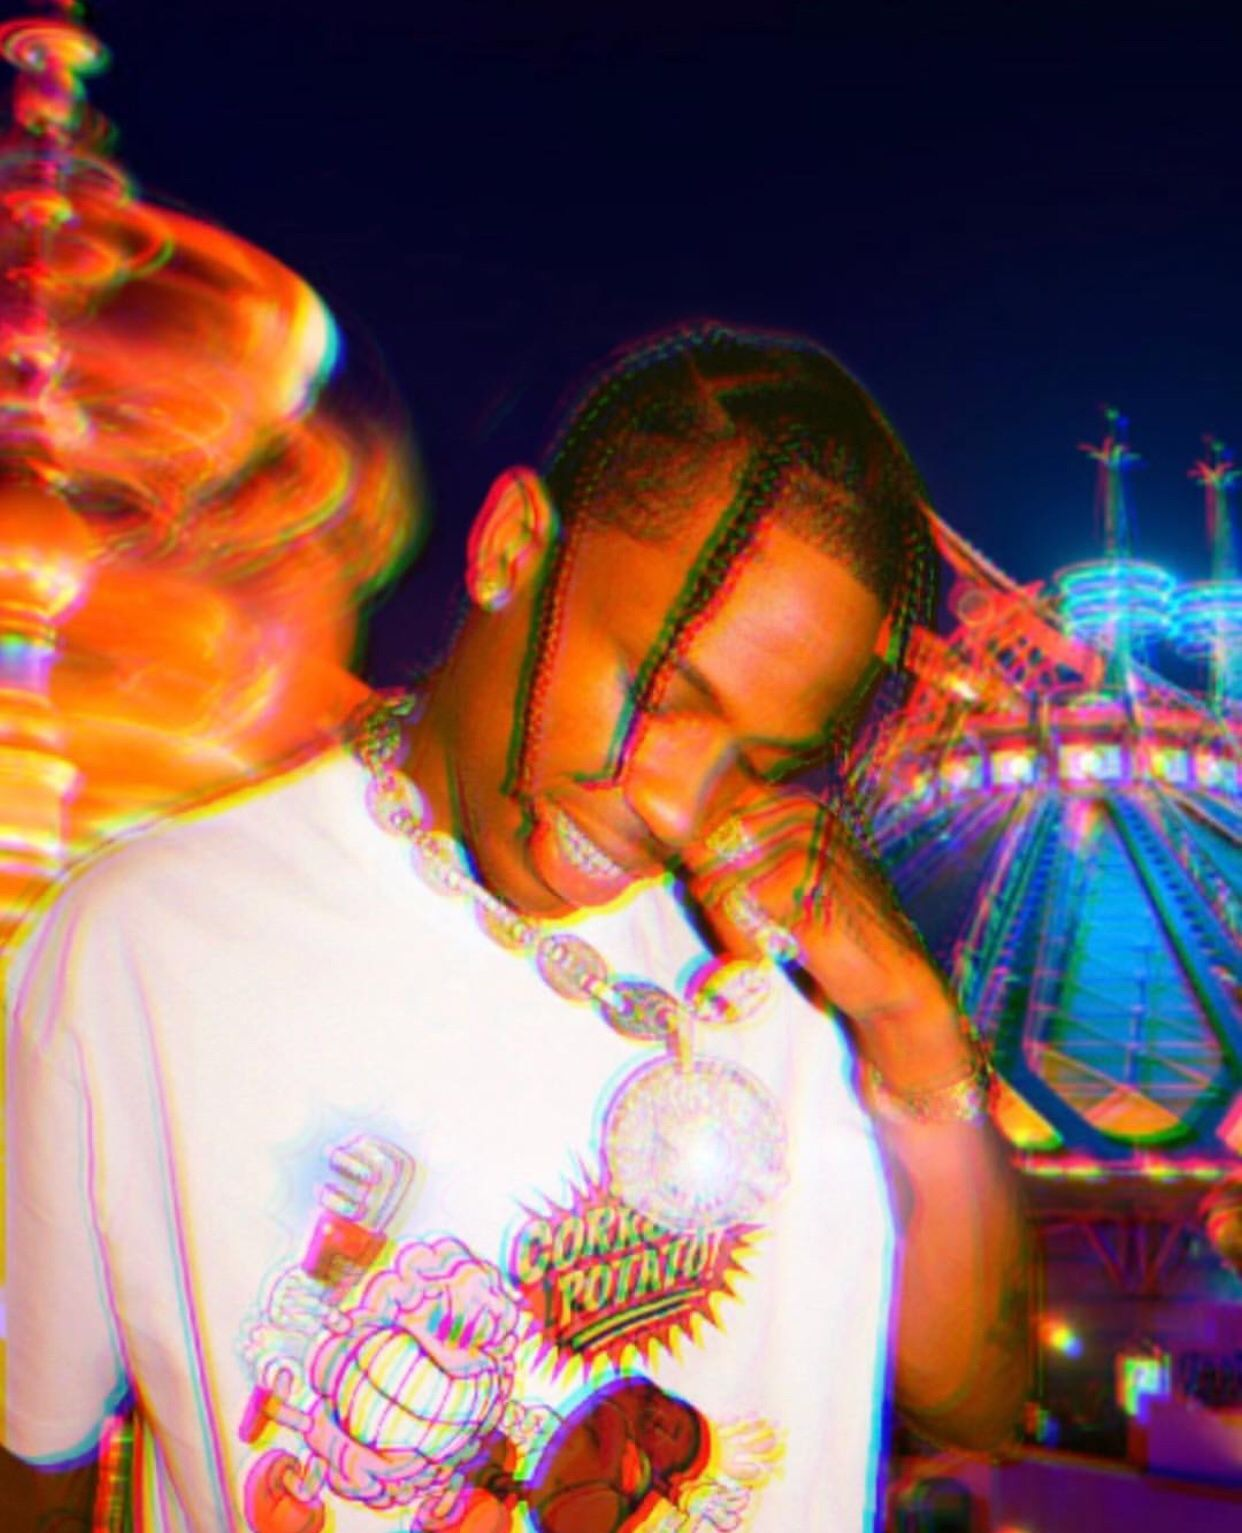 #travisscottwallpapers (With images) | Travis scott wallpapers